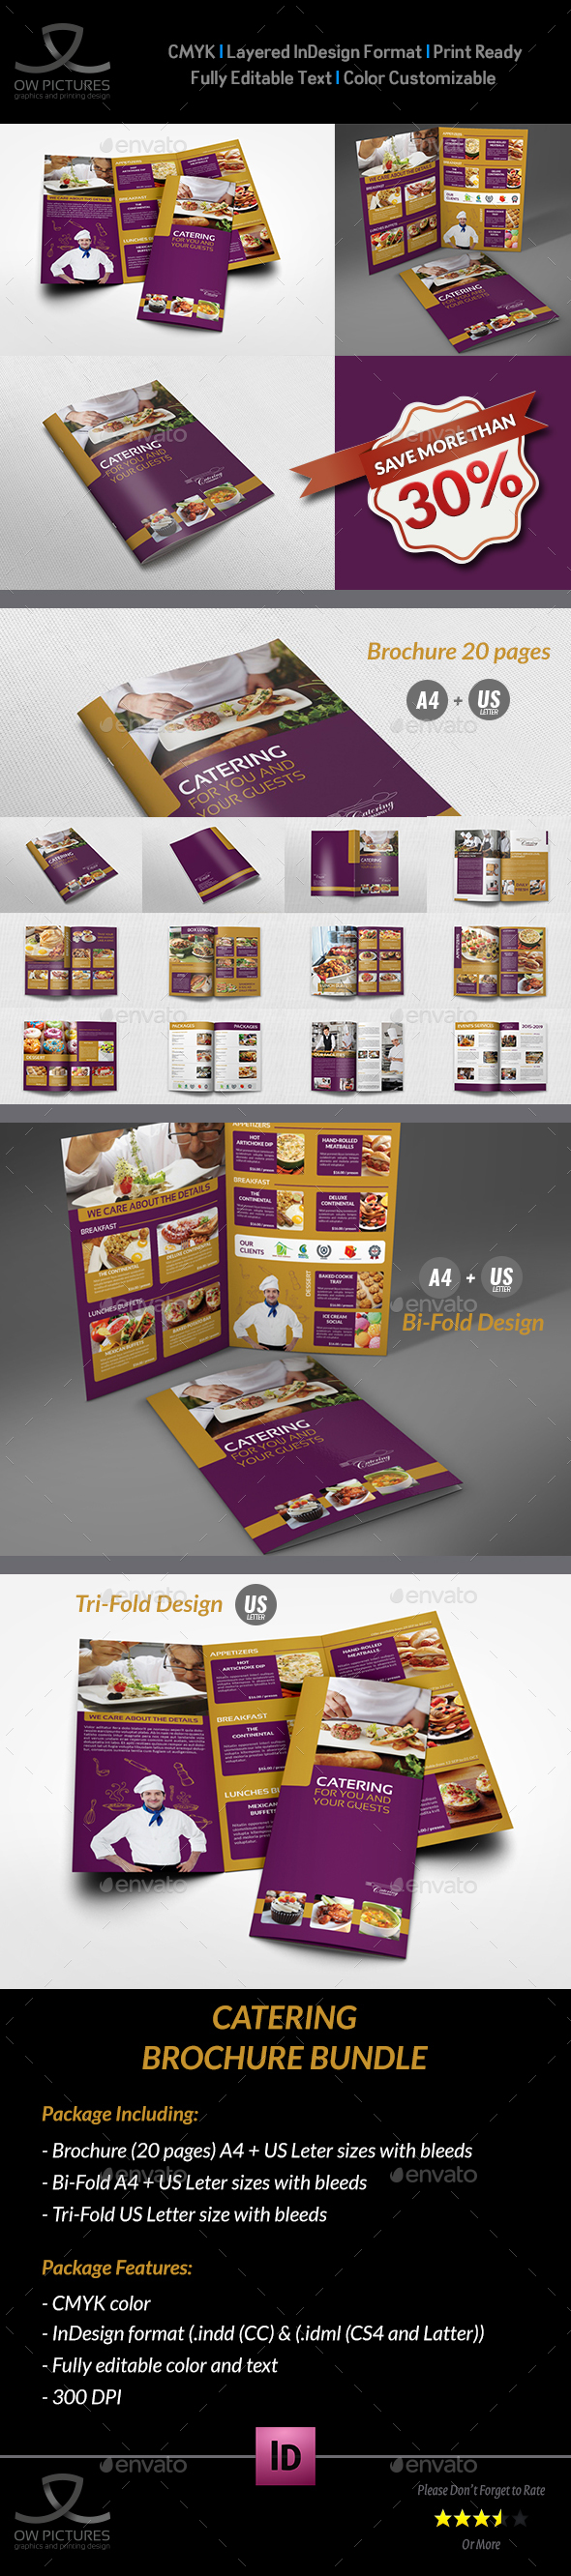 Catering Brochure Bundle Template   Pinterest   Brochures  Print     Catering Brochure  Bundle Template    Brochures Print Templates Download  here  https